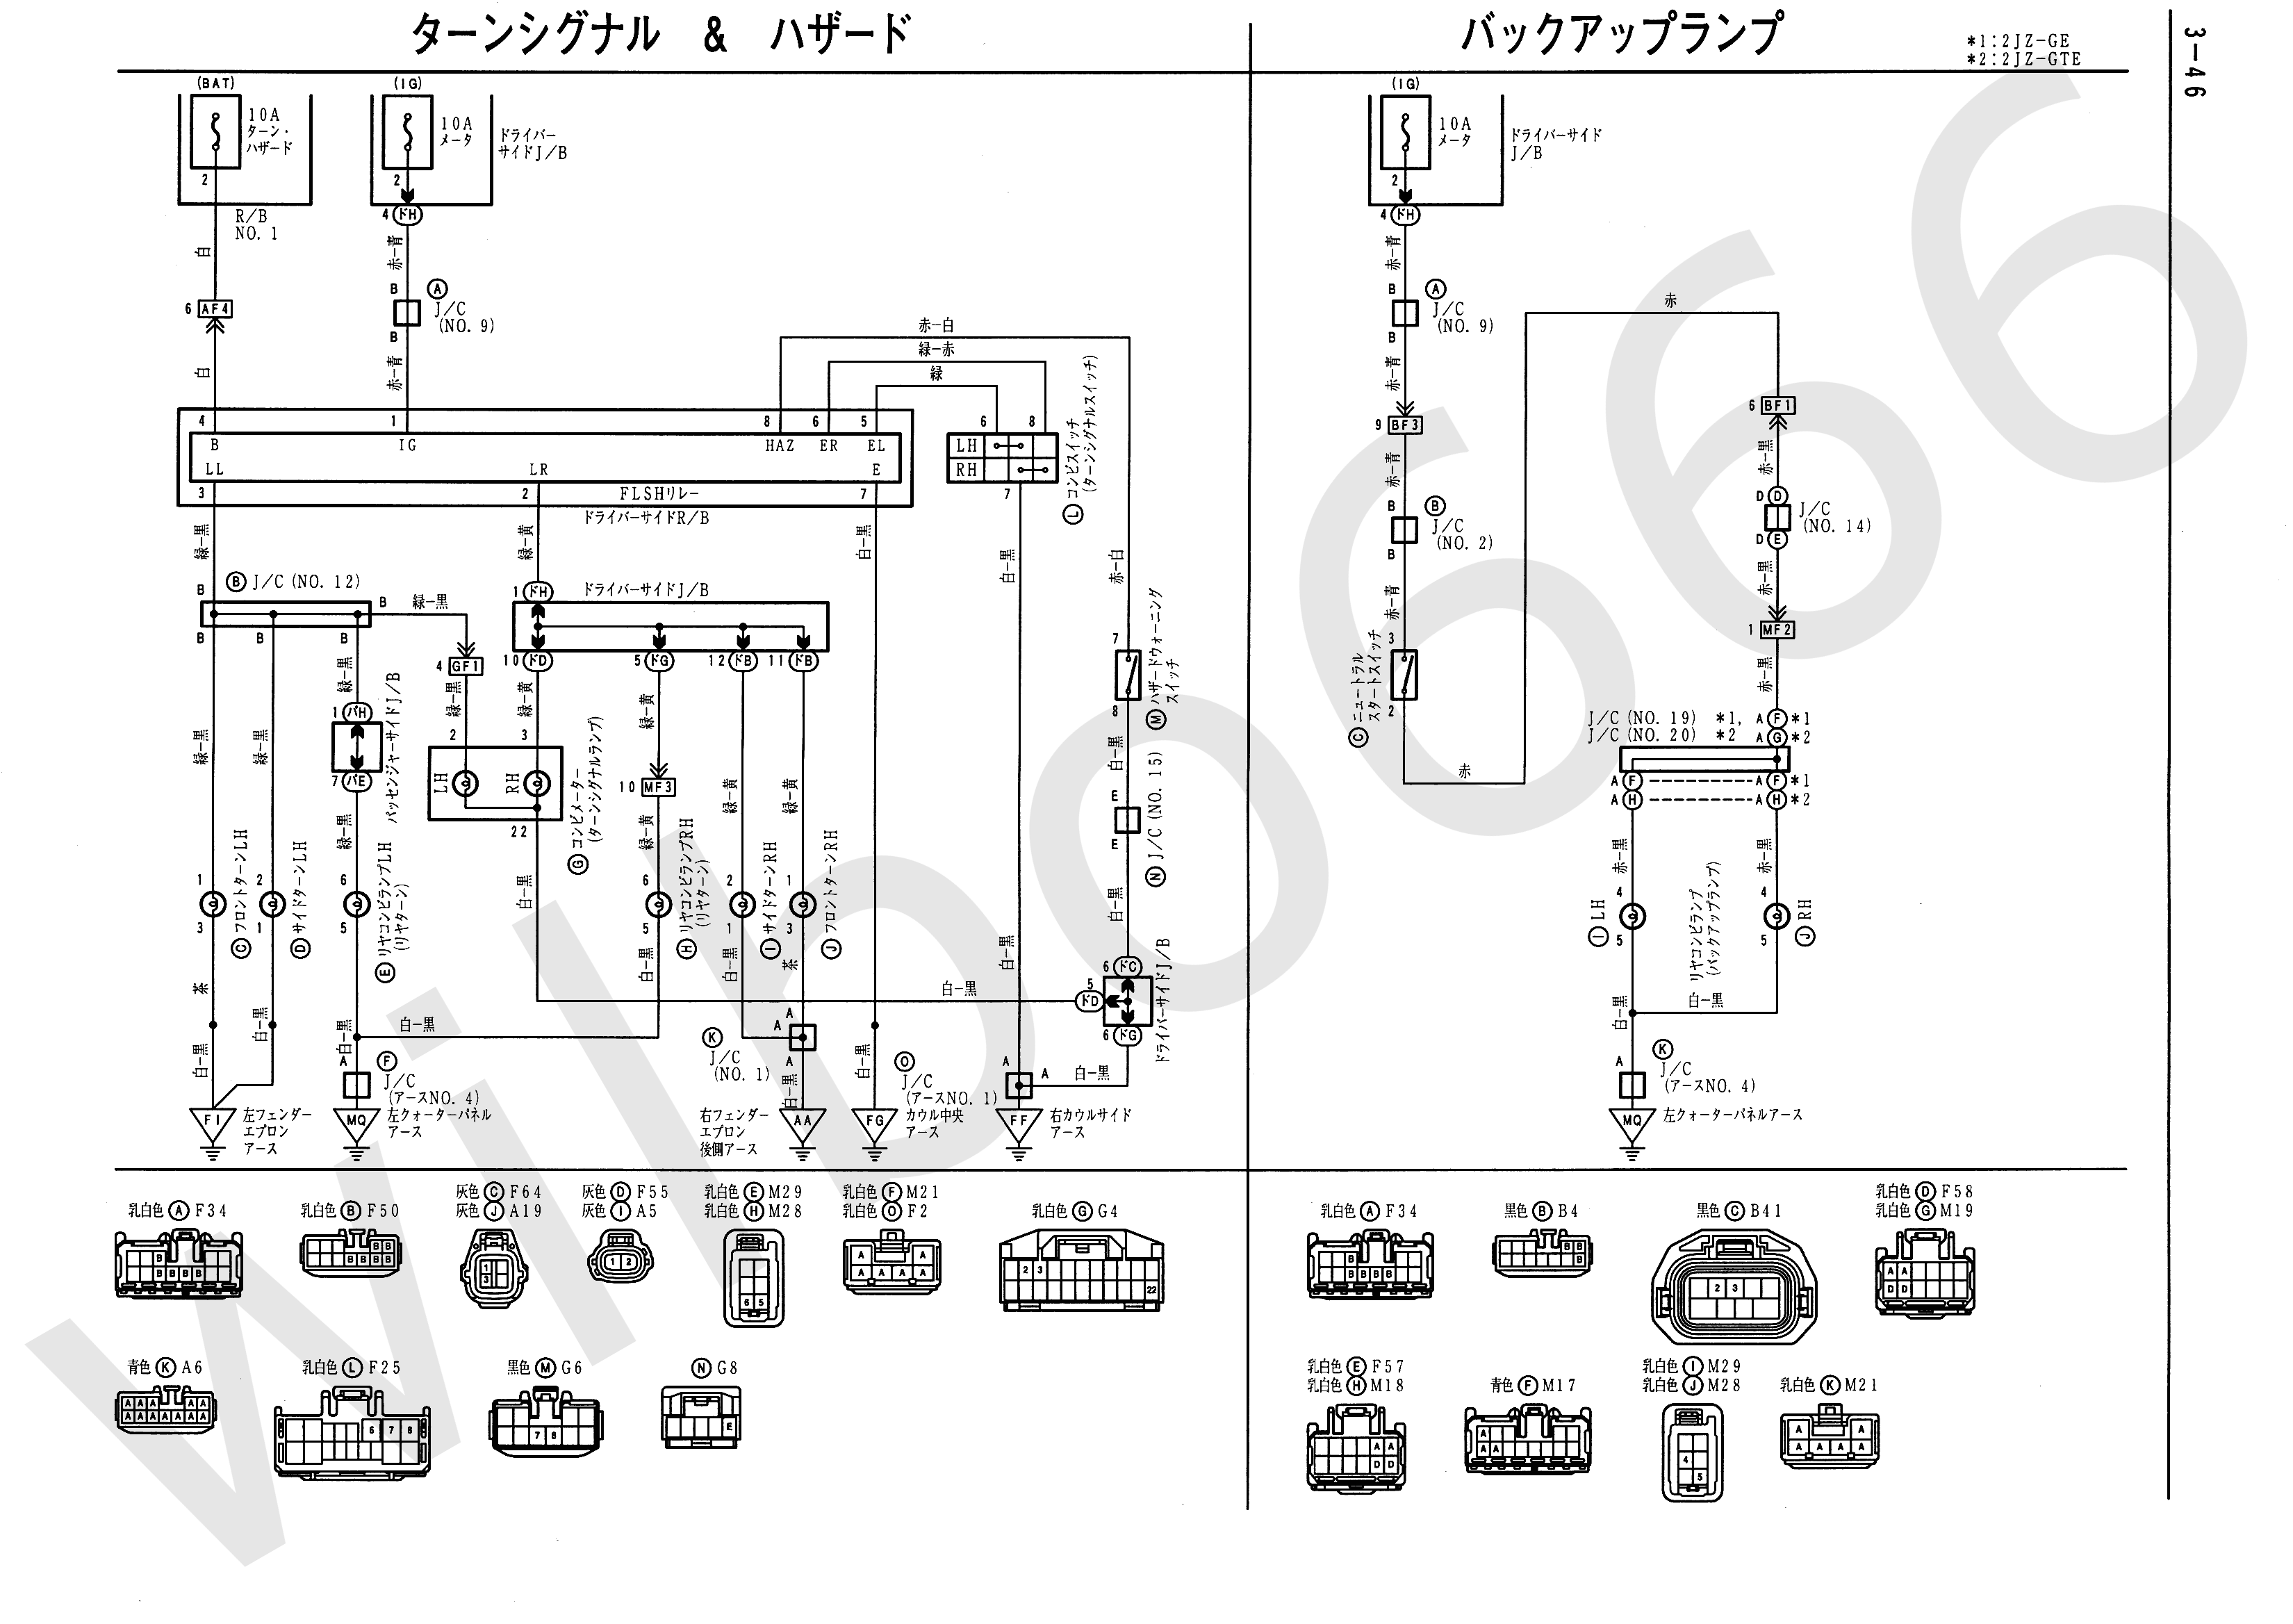 JZS161 Electrical Wiring Diagram 6748505 3 46 wilbo666 2jz gte vvti jzs161 aristo engine wiring  at eliteediting.co